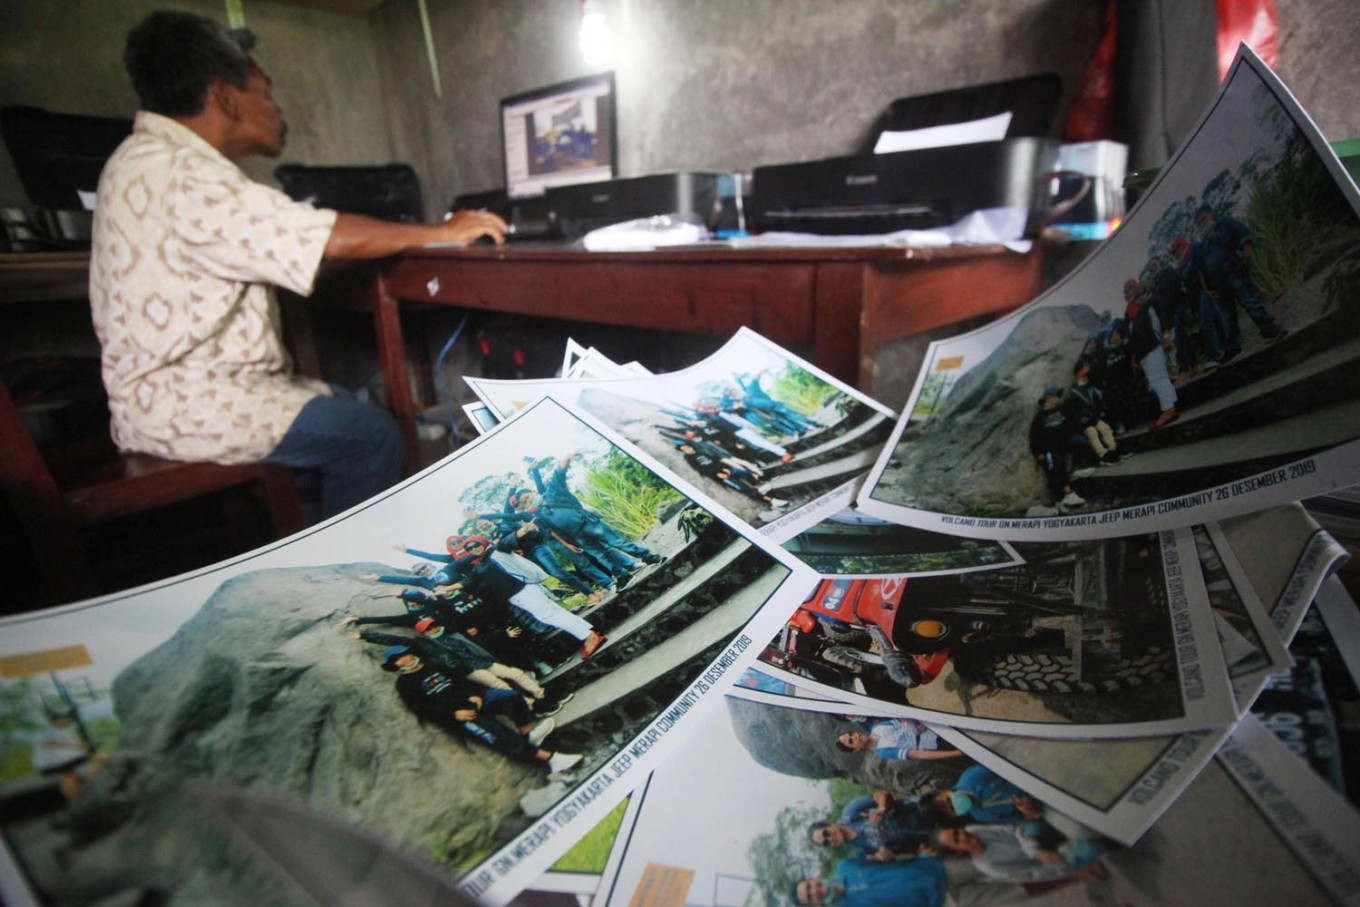 High demand: Photographs are printed on a number of printers to ensure speedy service. JP/Boy T Harjanto